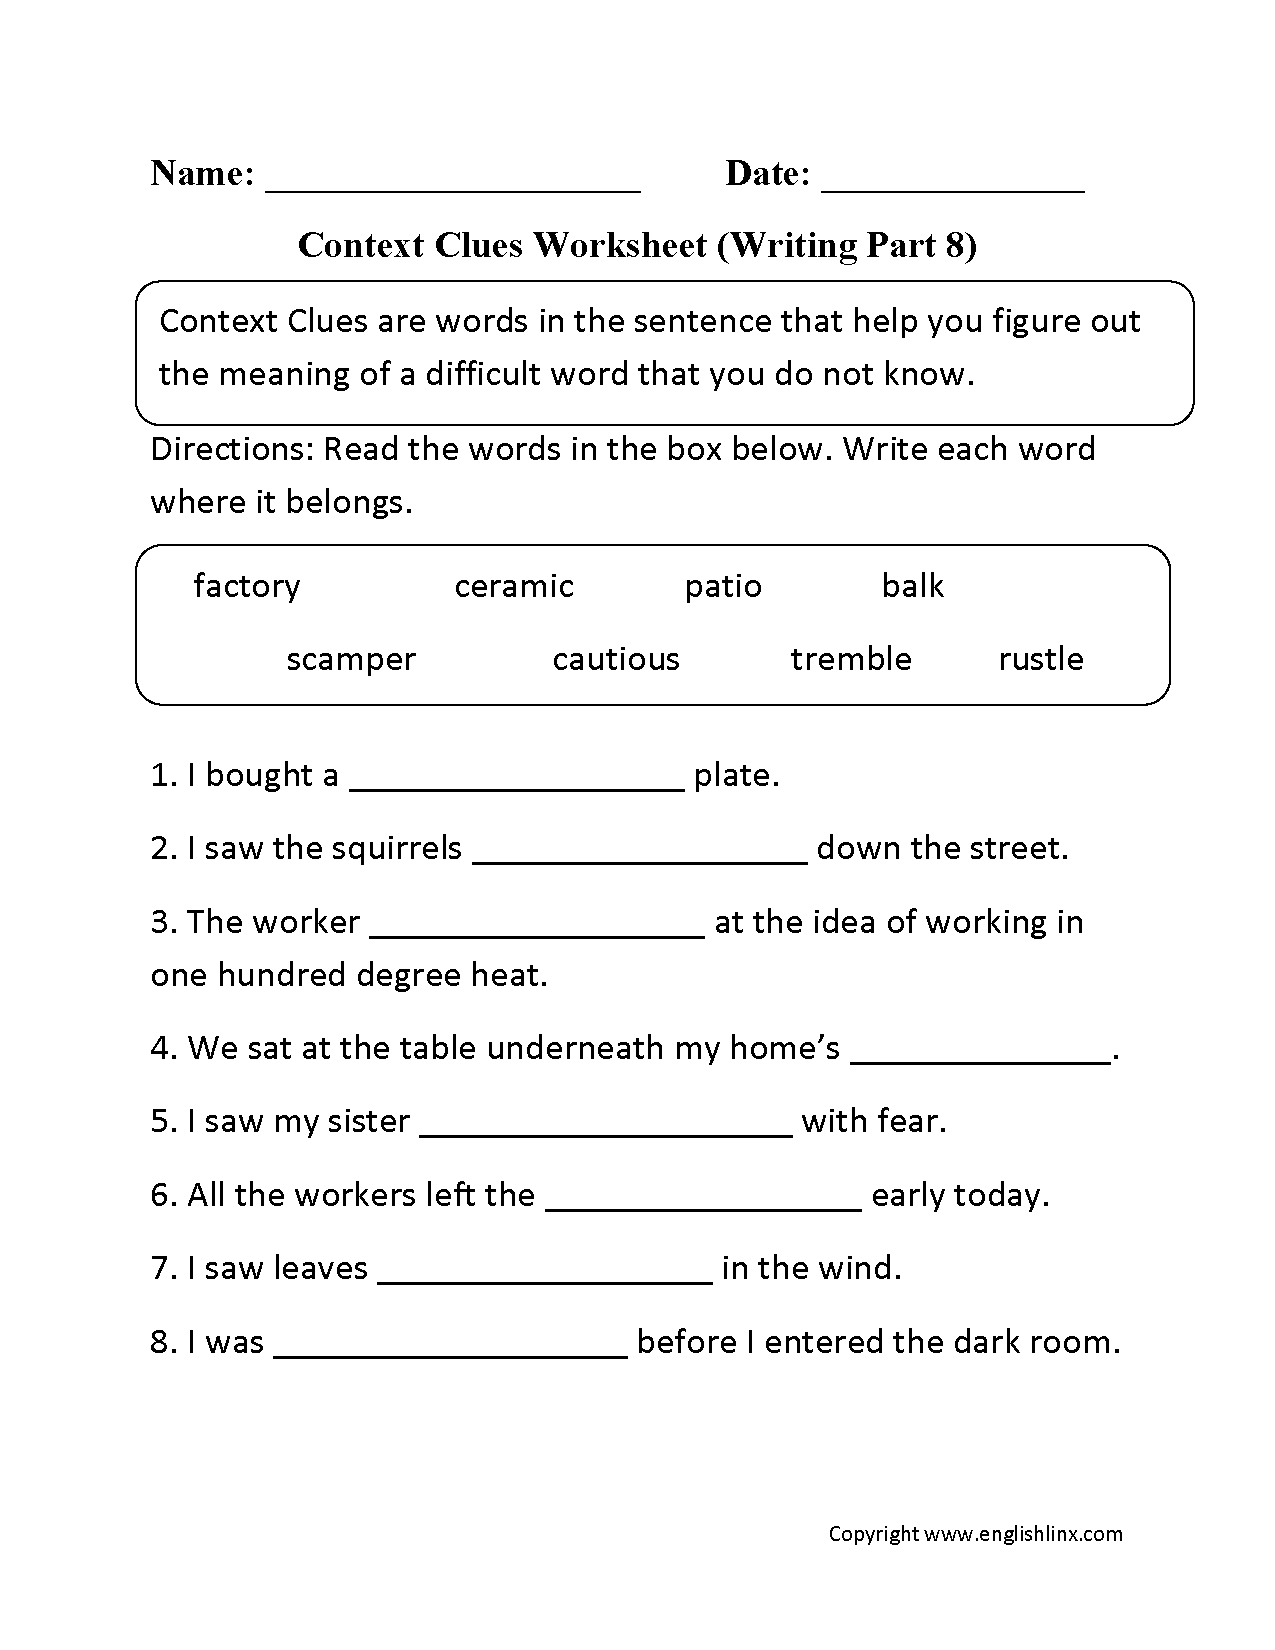 Context Clues 4th Grade Worksheet